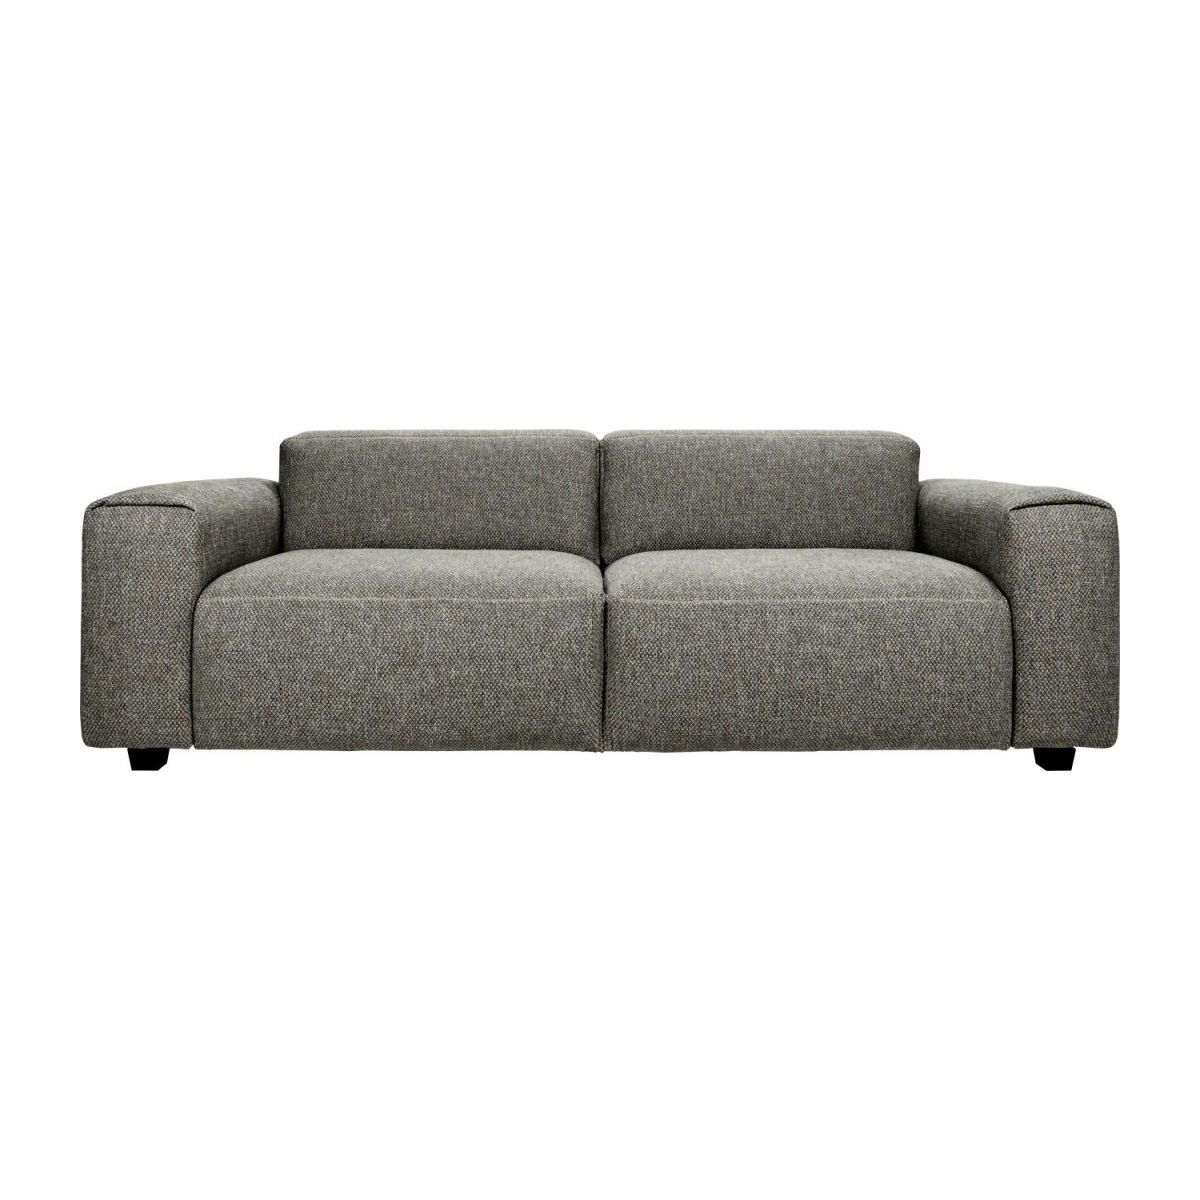 3-Sitzer Sofa aus Stoff Bellagio night black n°4